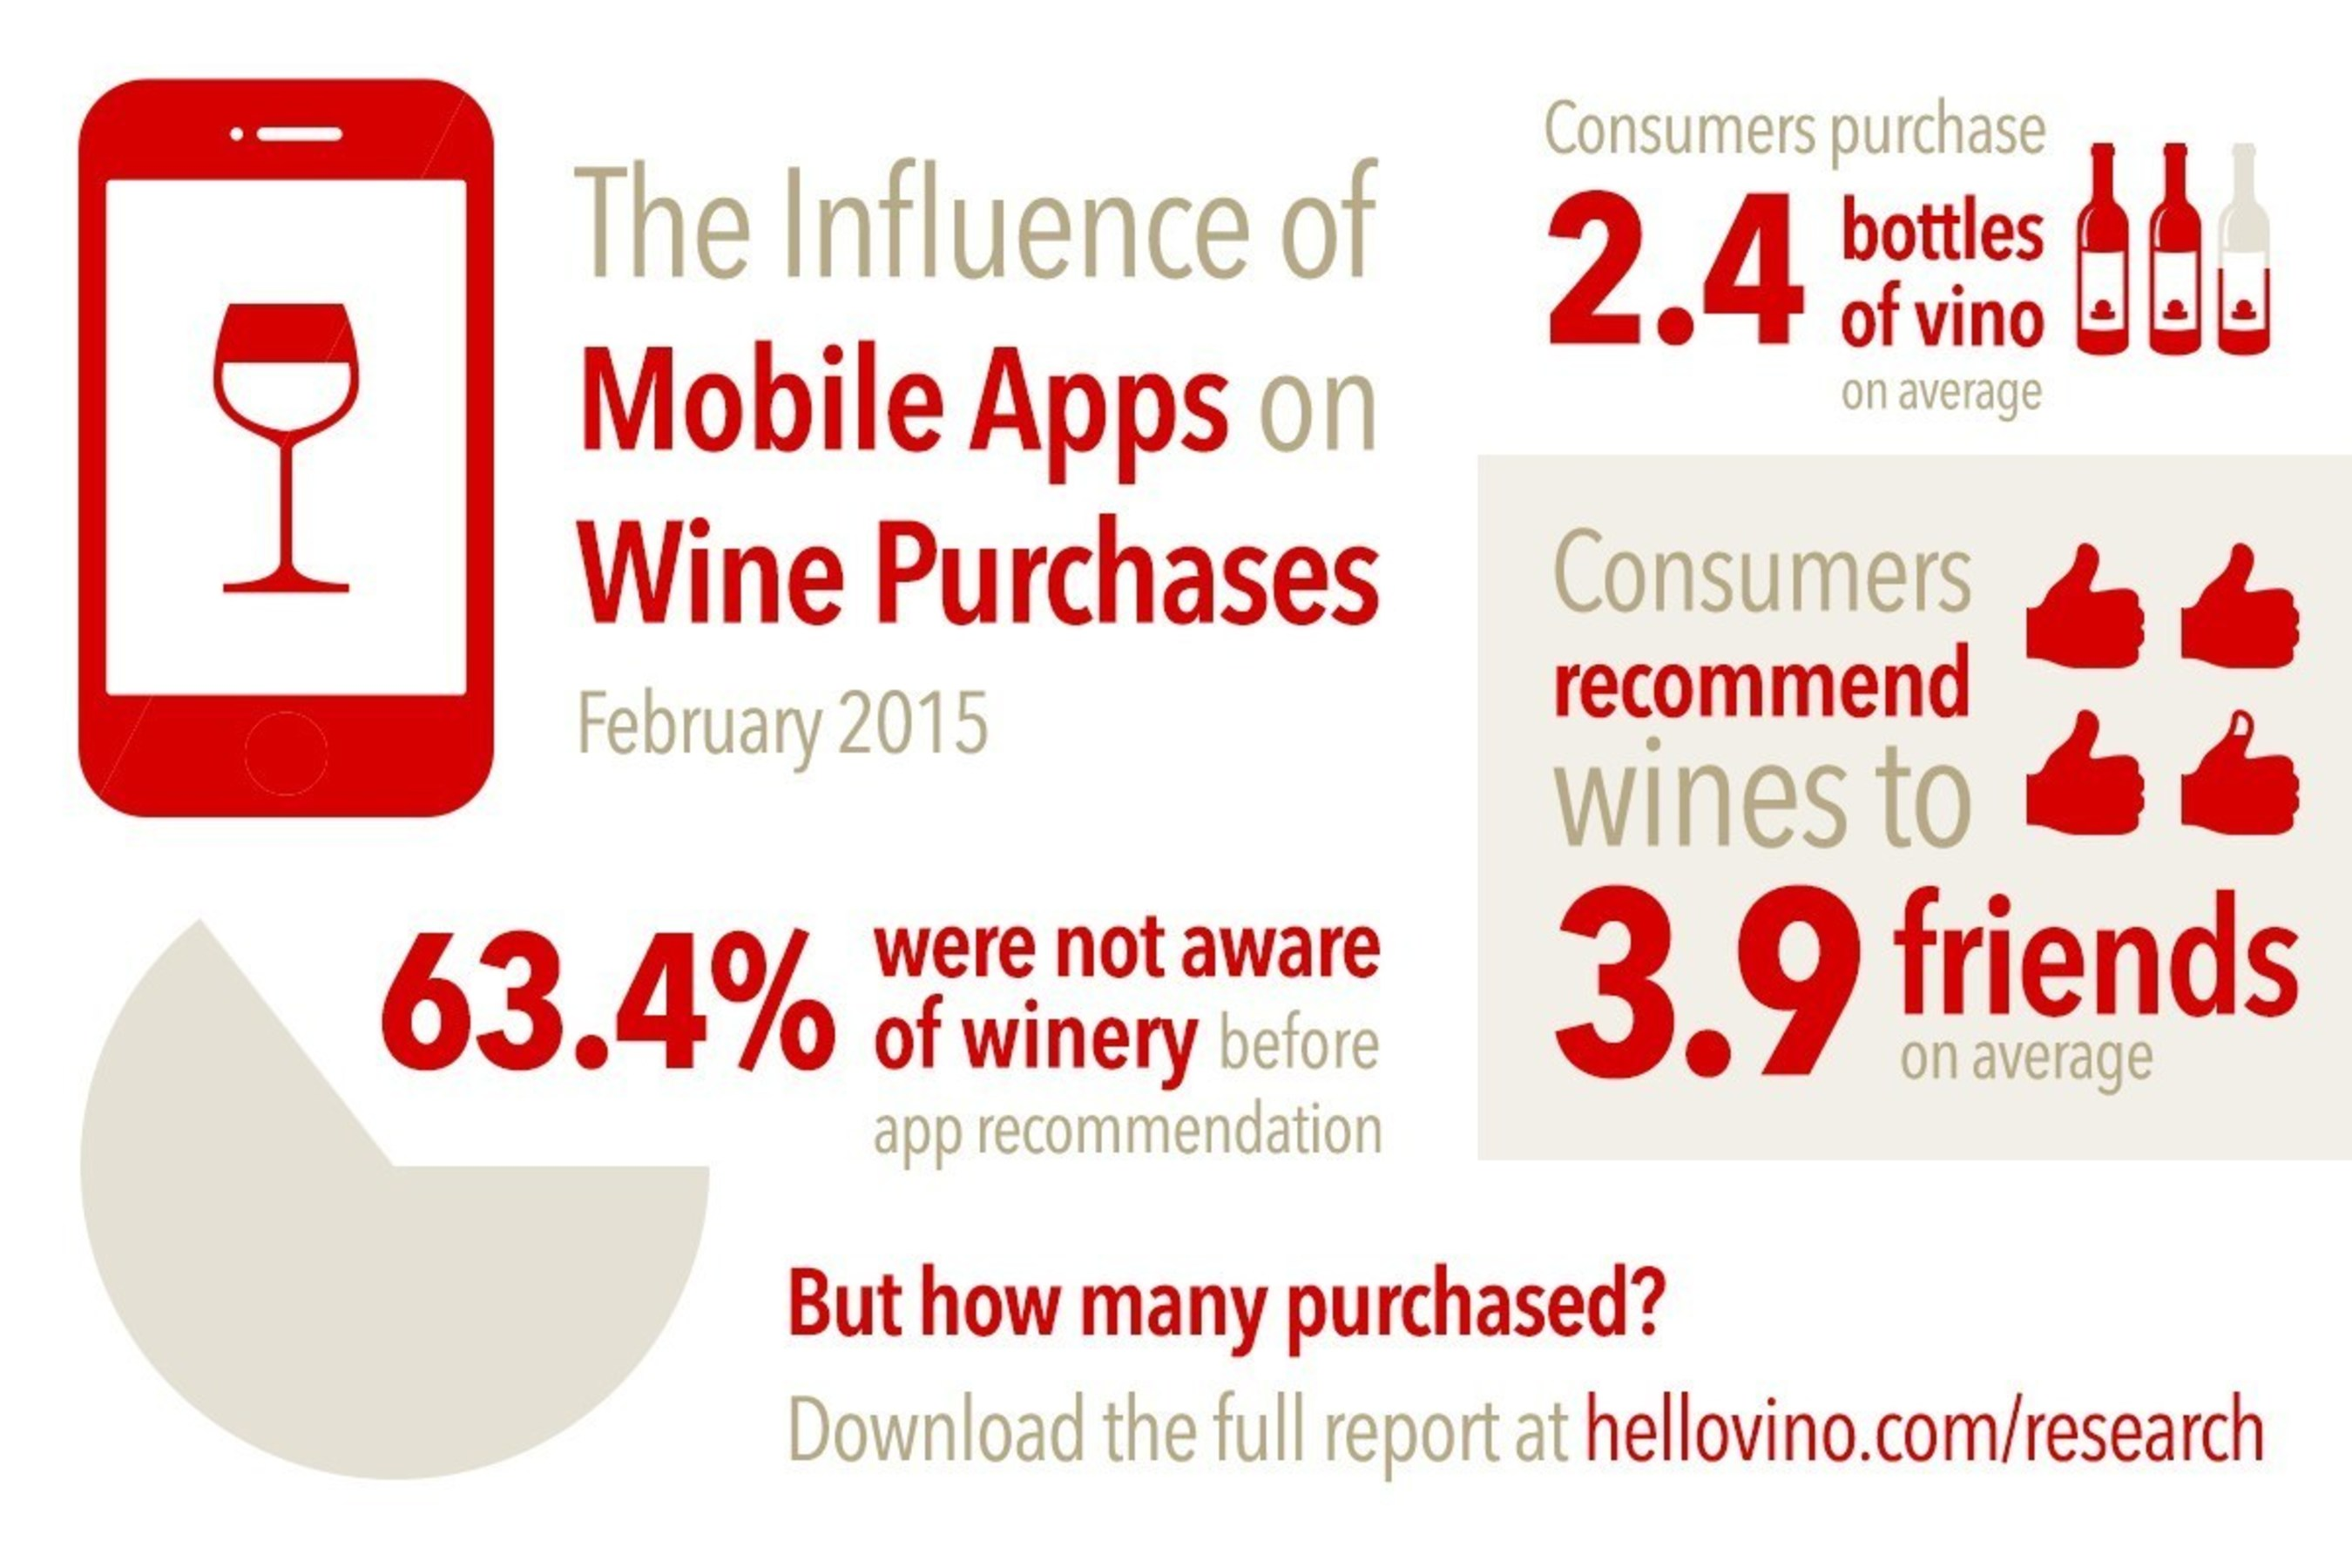 """Highlights from """"The Influence of Mobile Apps on Wine Purchases"""" research report."""